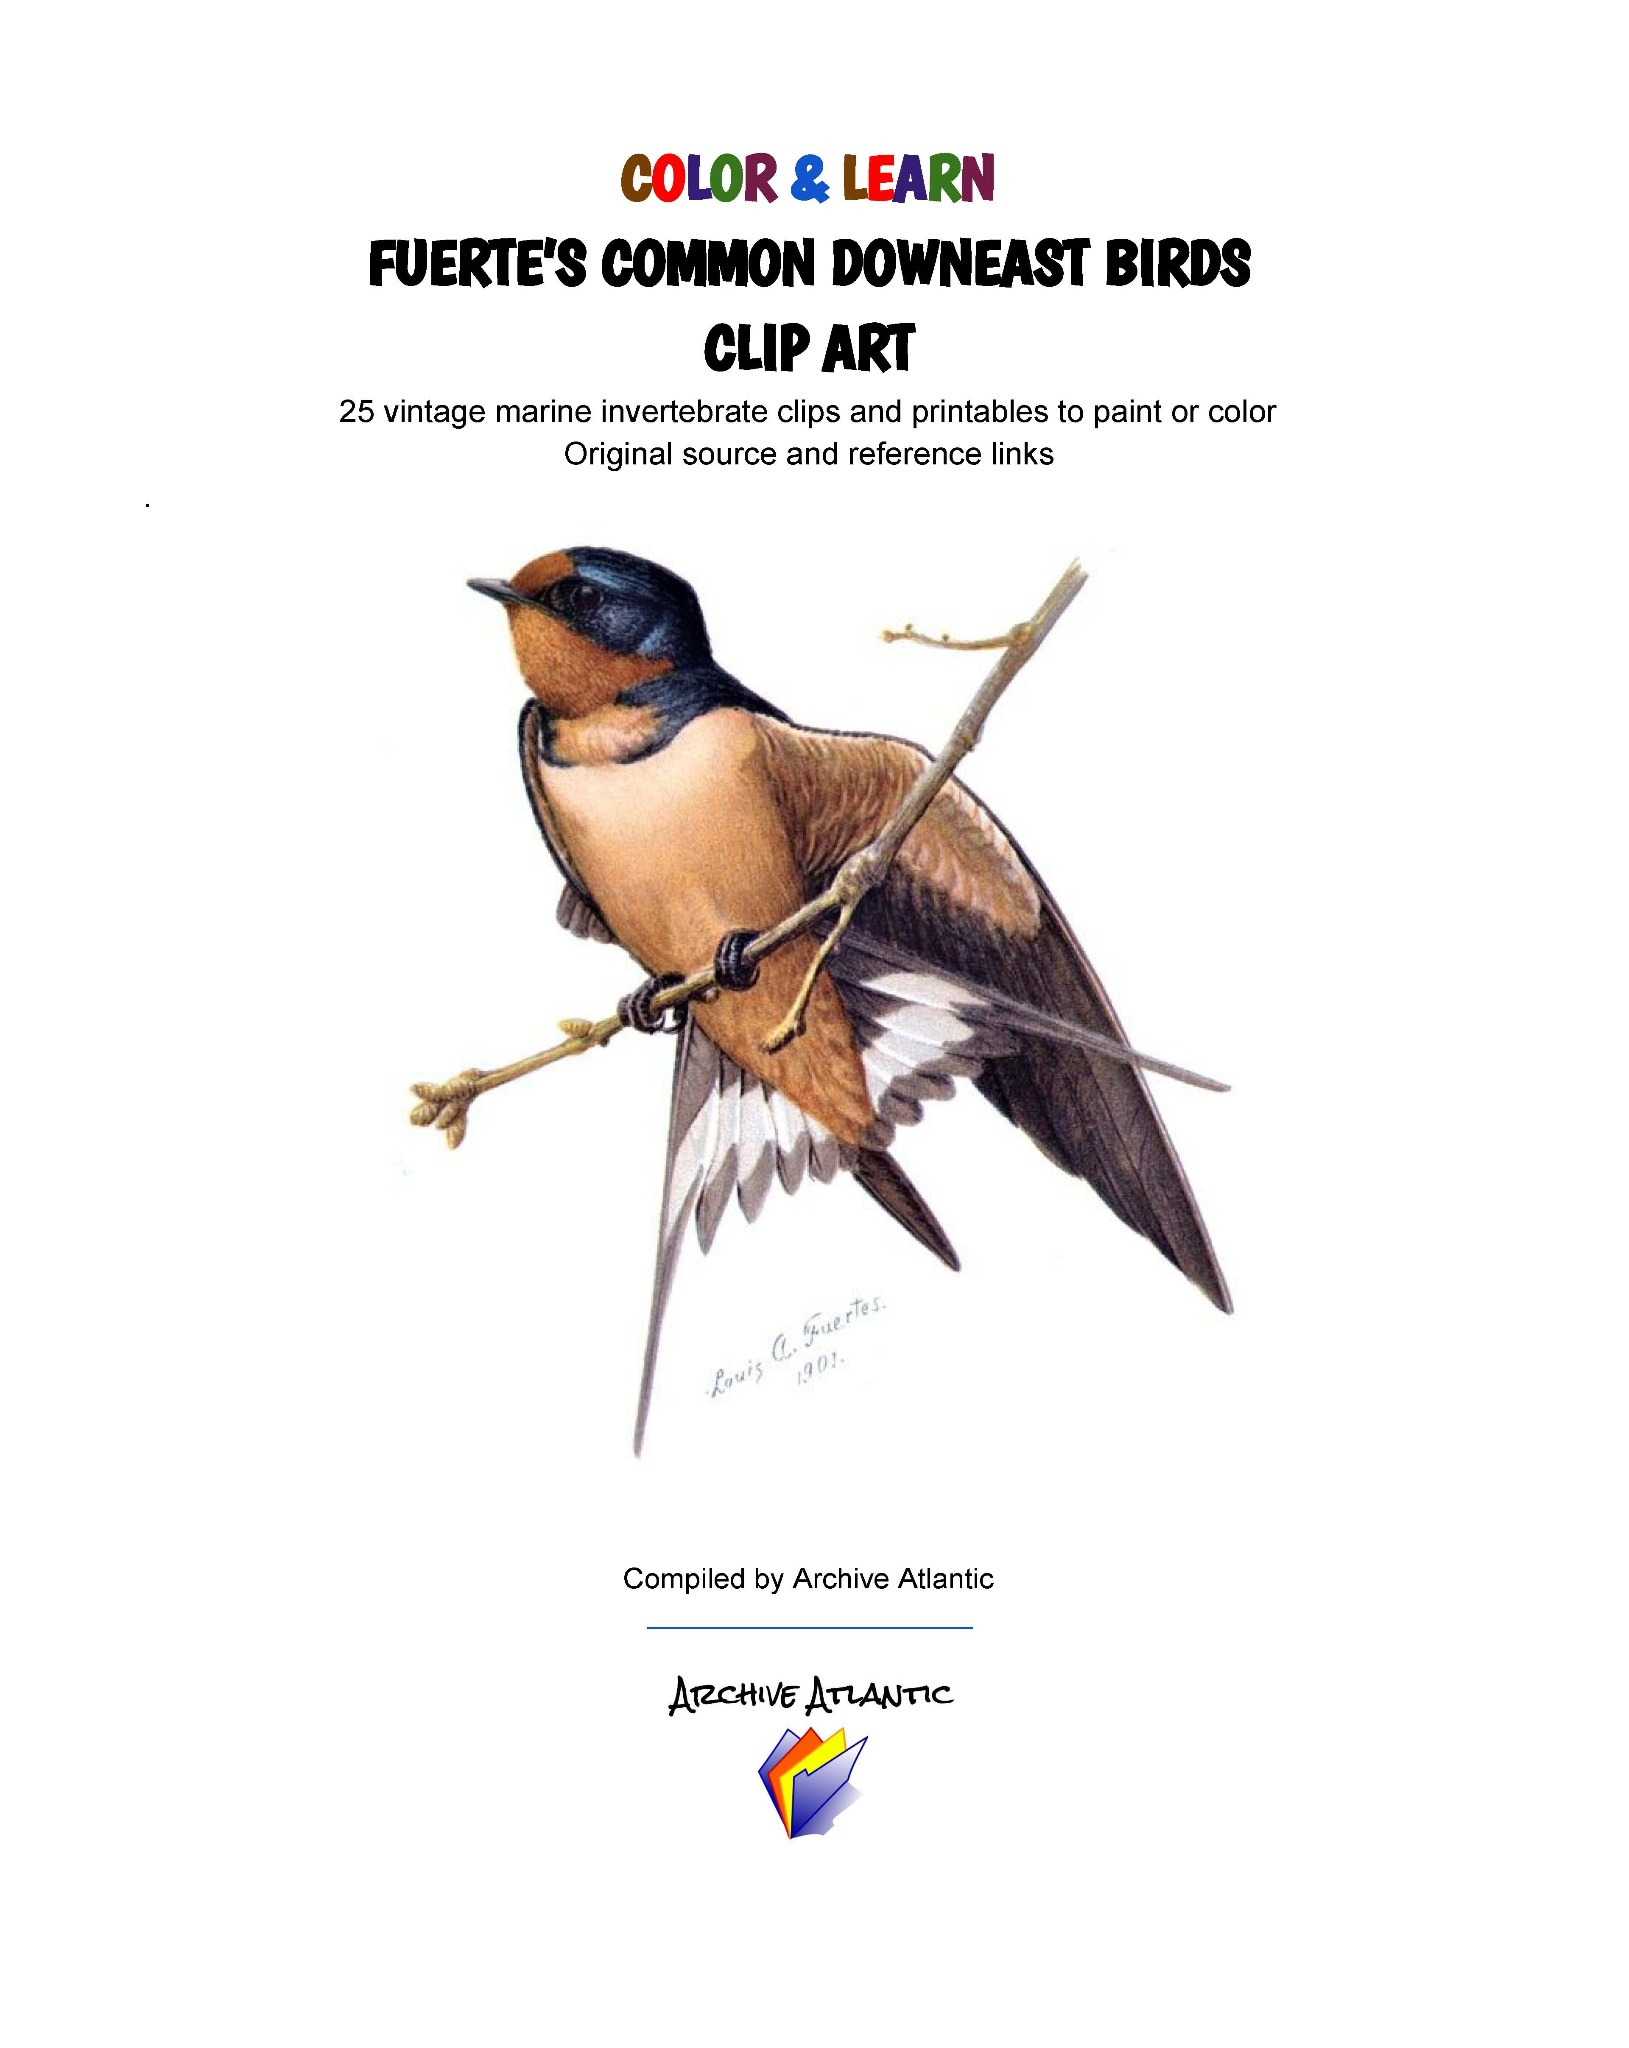 COLOR & LEARN - FUERTE'S COMMON DOWNEAST BIRDS